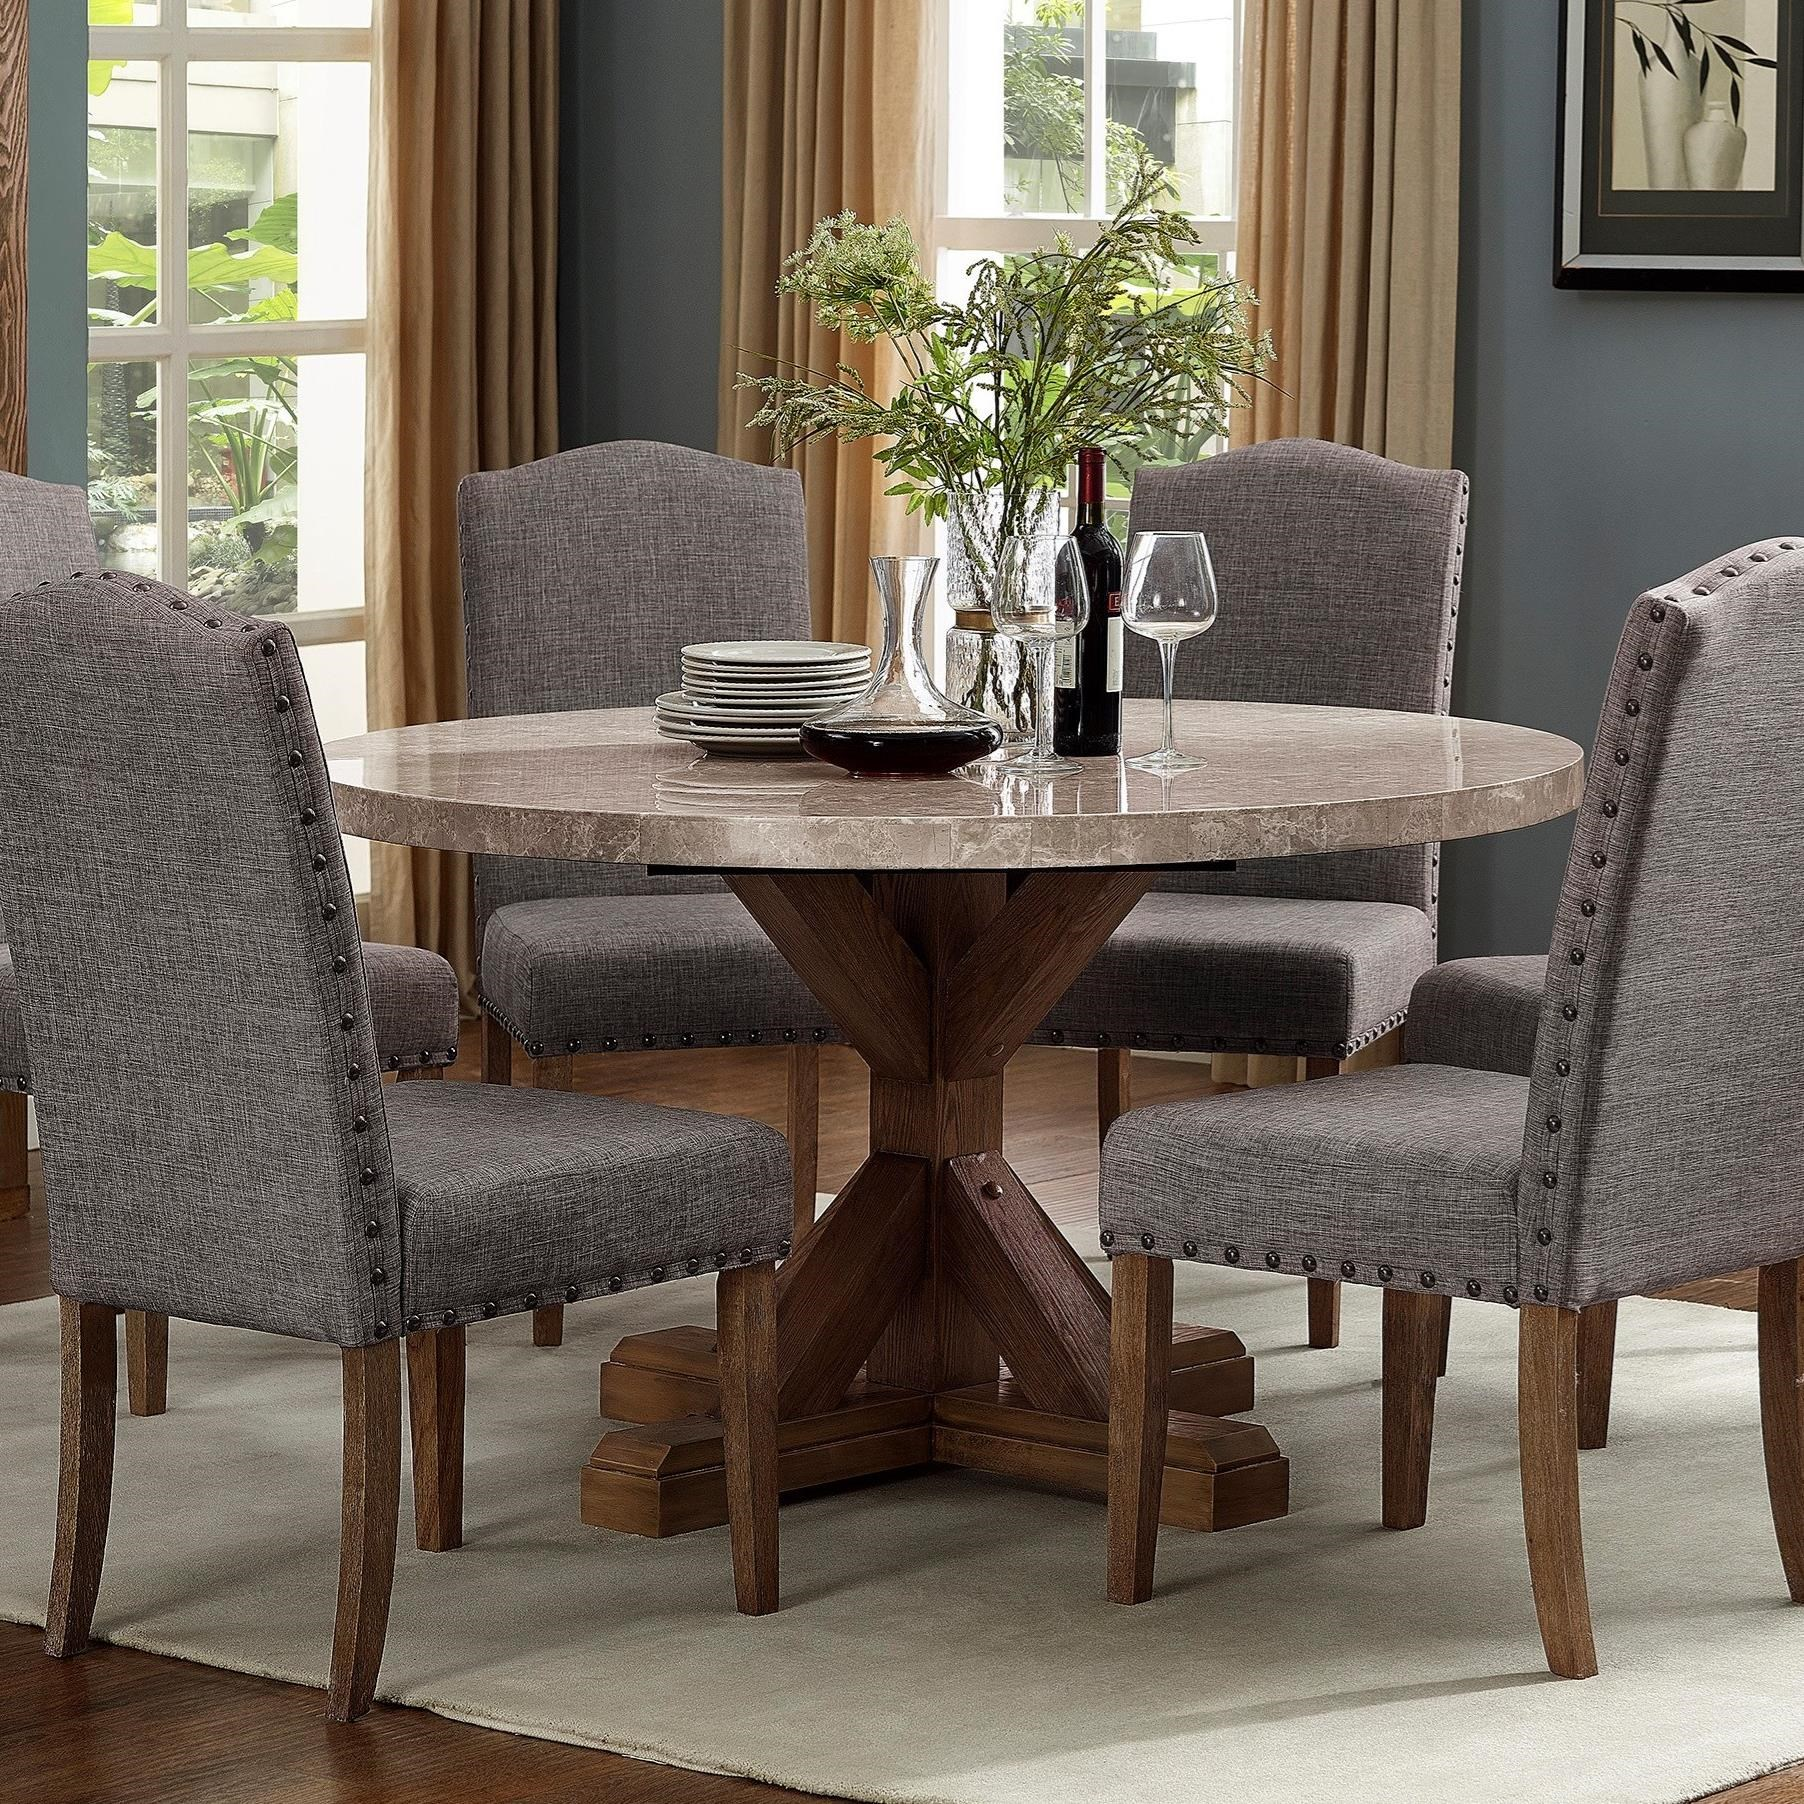 Small Dining Table Vesper Dining Round Dining Table With Pedestal Base By Crown Mark At Dunk Bright Furniture